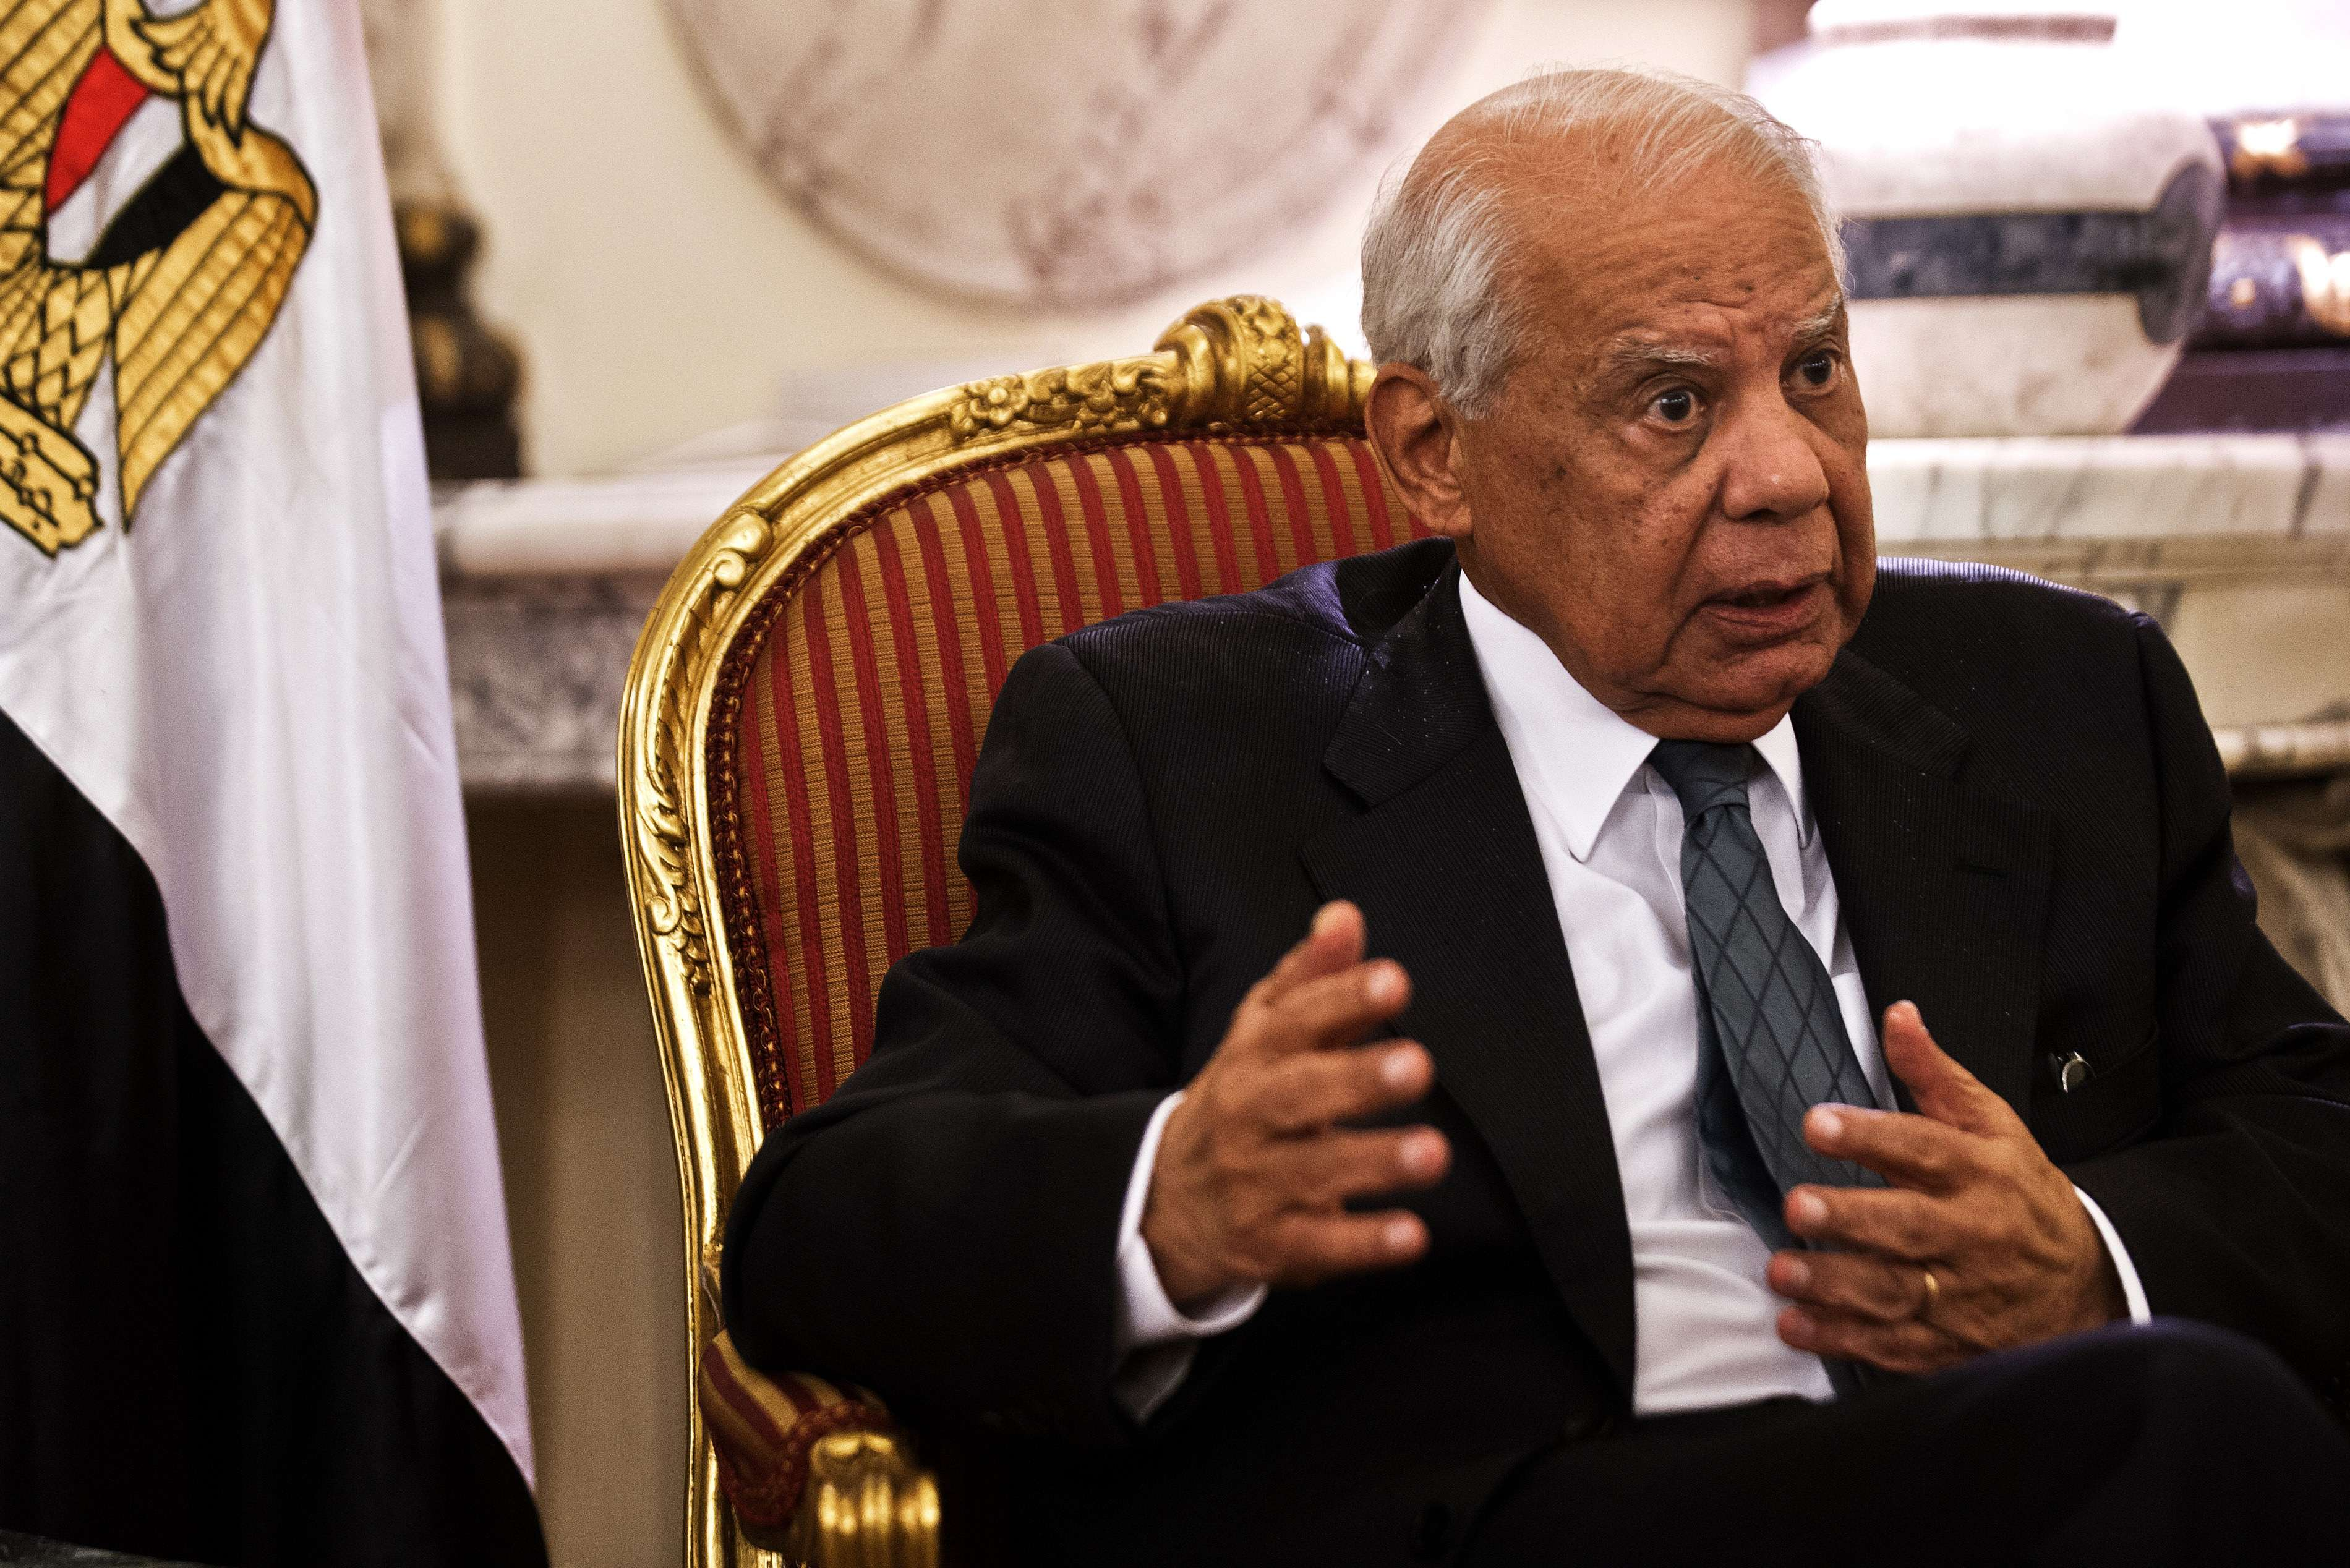 Egypt's interim prime minister Hazem Beblawi gives an interview to an Agence France-Presse journalist at his office in Cairo on November 24, 2013 as Egypt's interim president approved a controversial law regulating demonstrations.  (AFP PHOTO/GIANLUIGI GUERCIA)